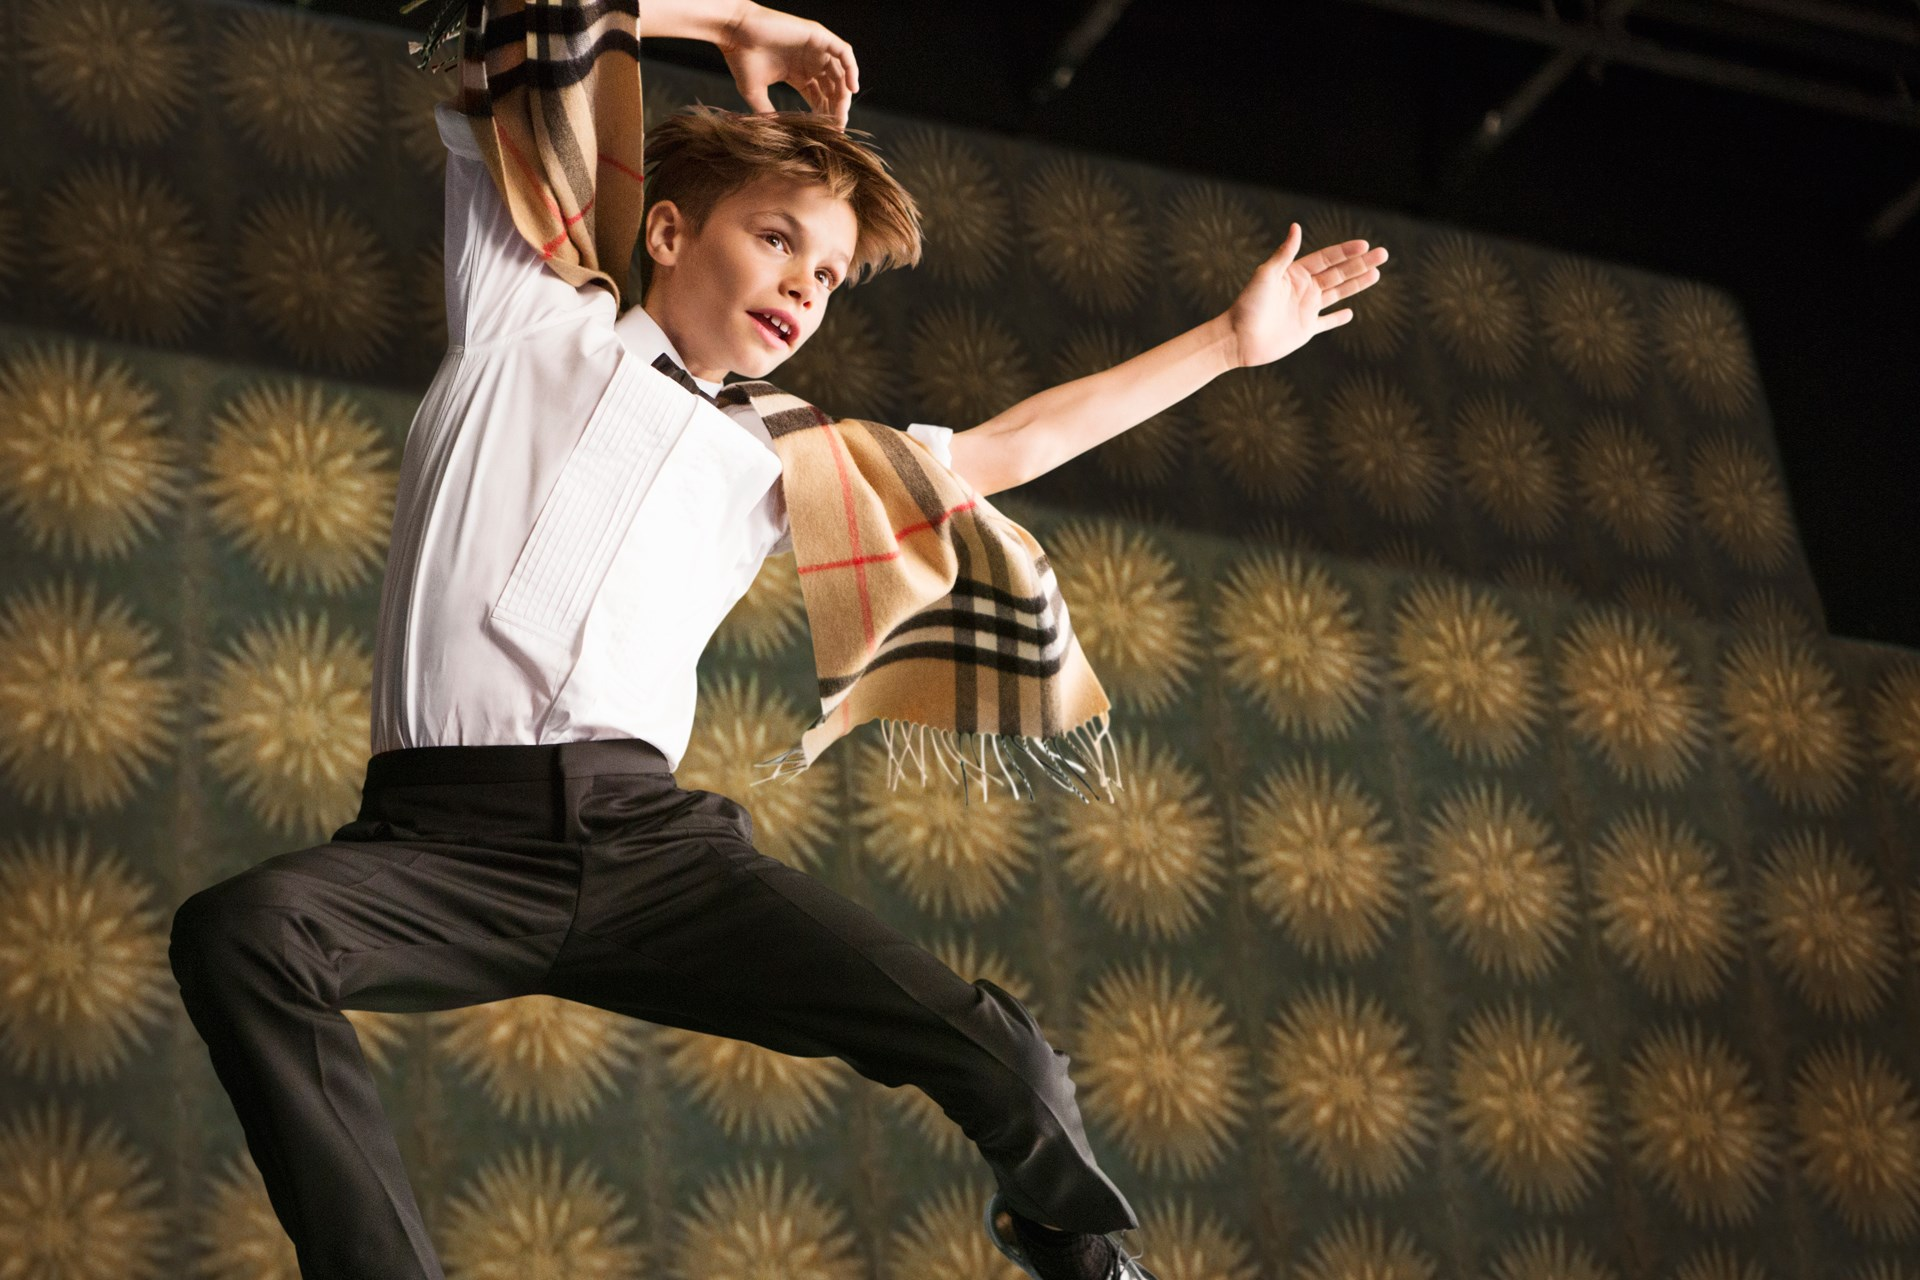 """Burberry """"Billy Elliot"""" Christmas 2015 Campaign Featuring Romeo Beckham"""